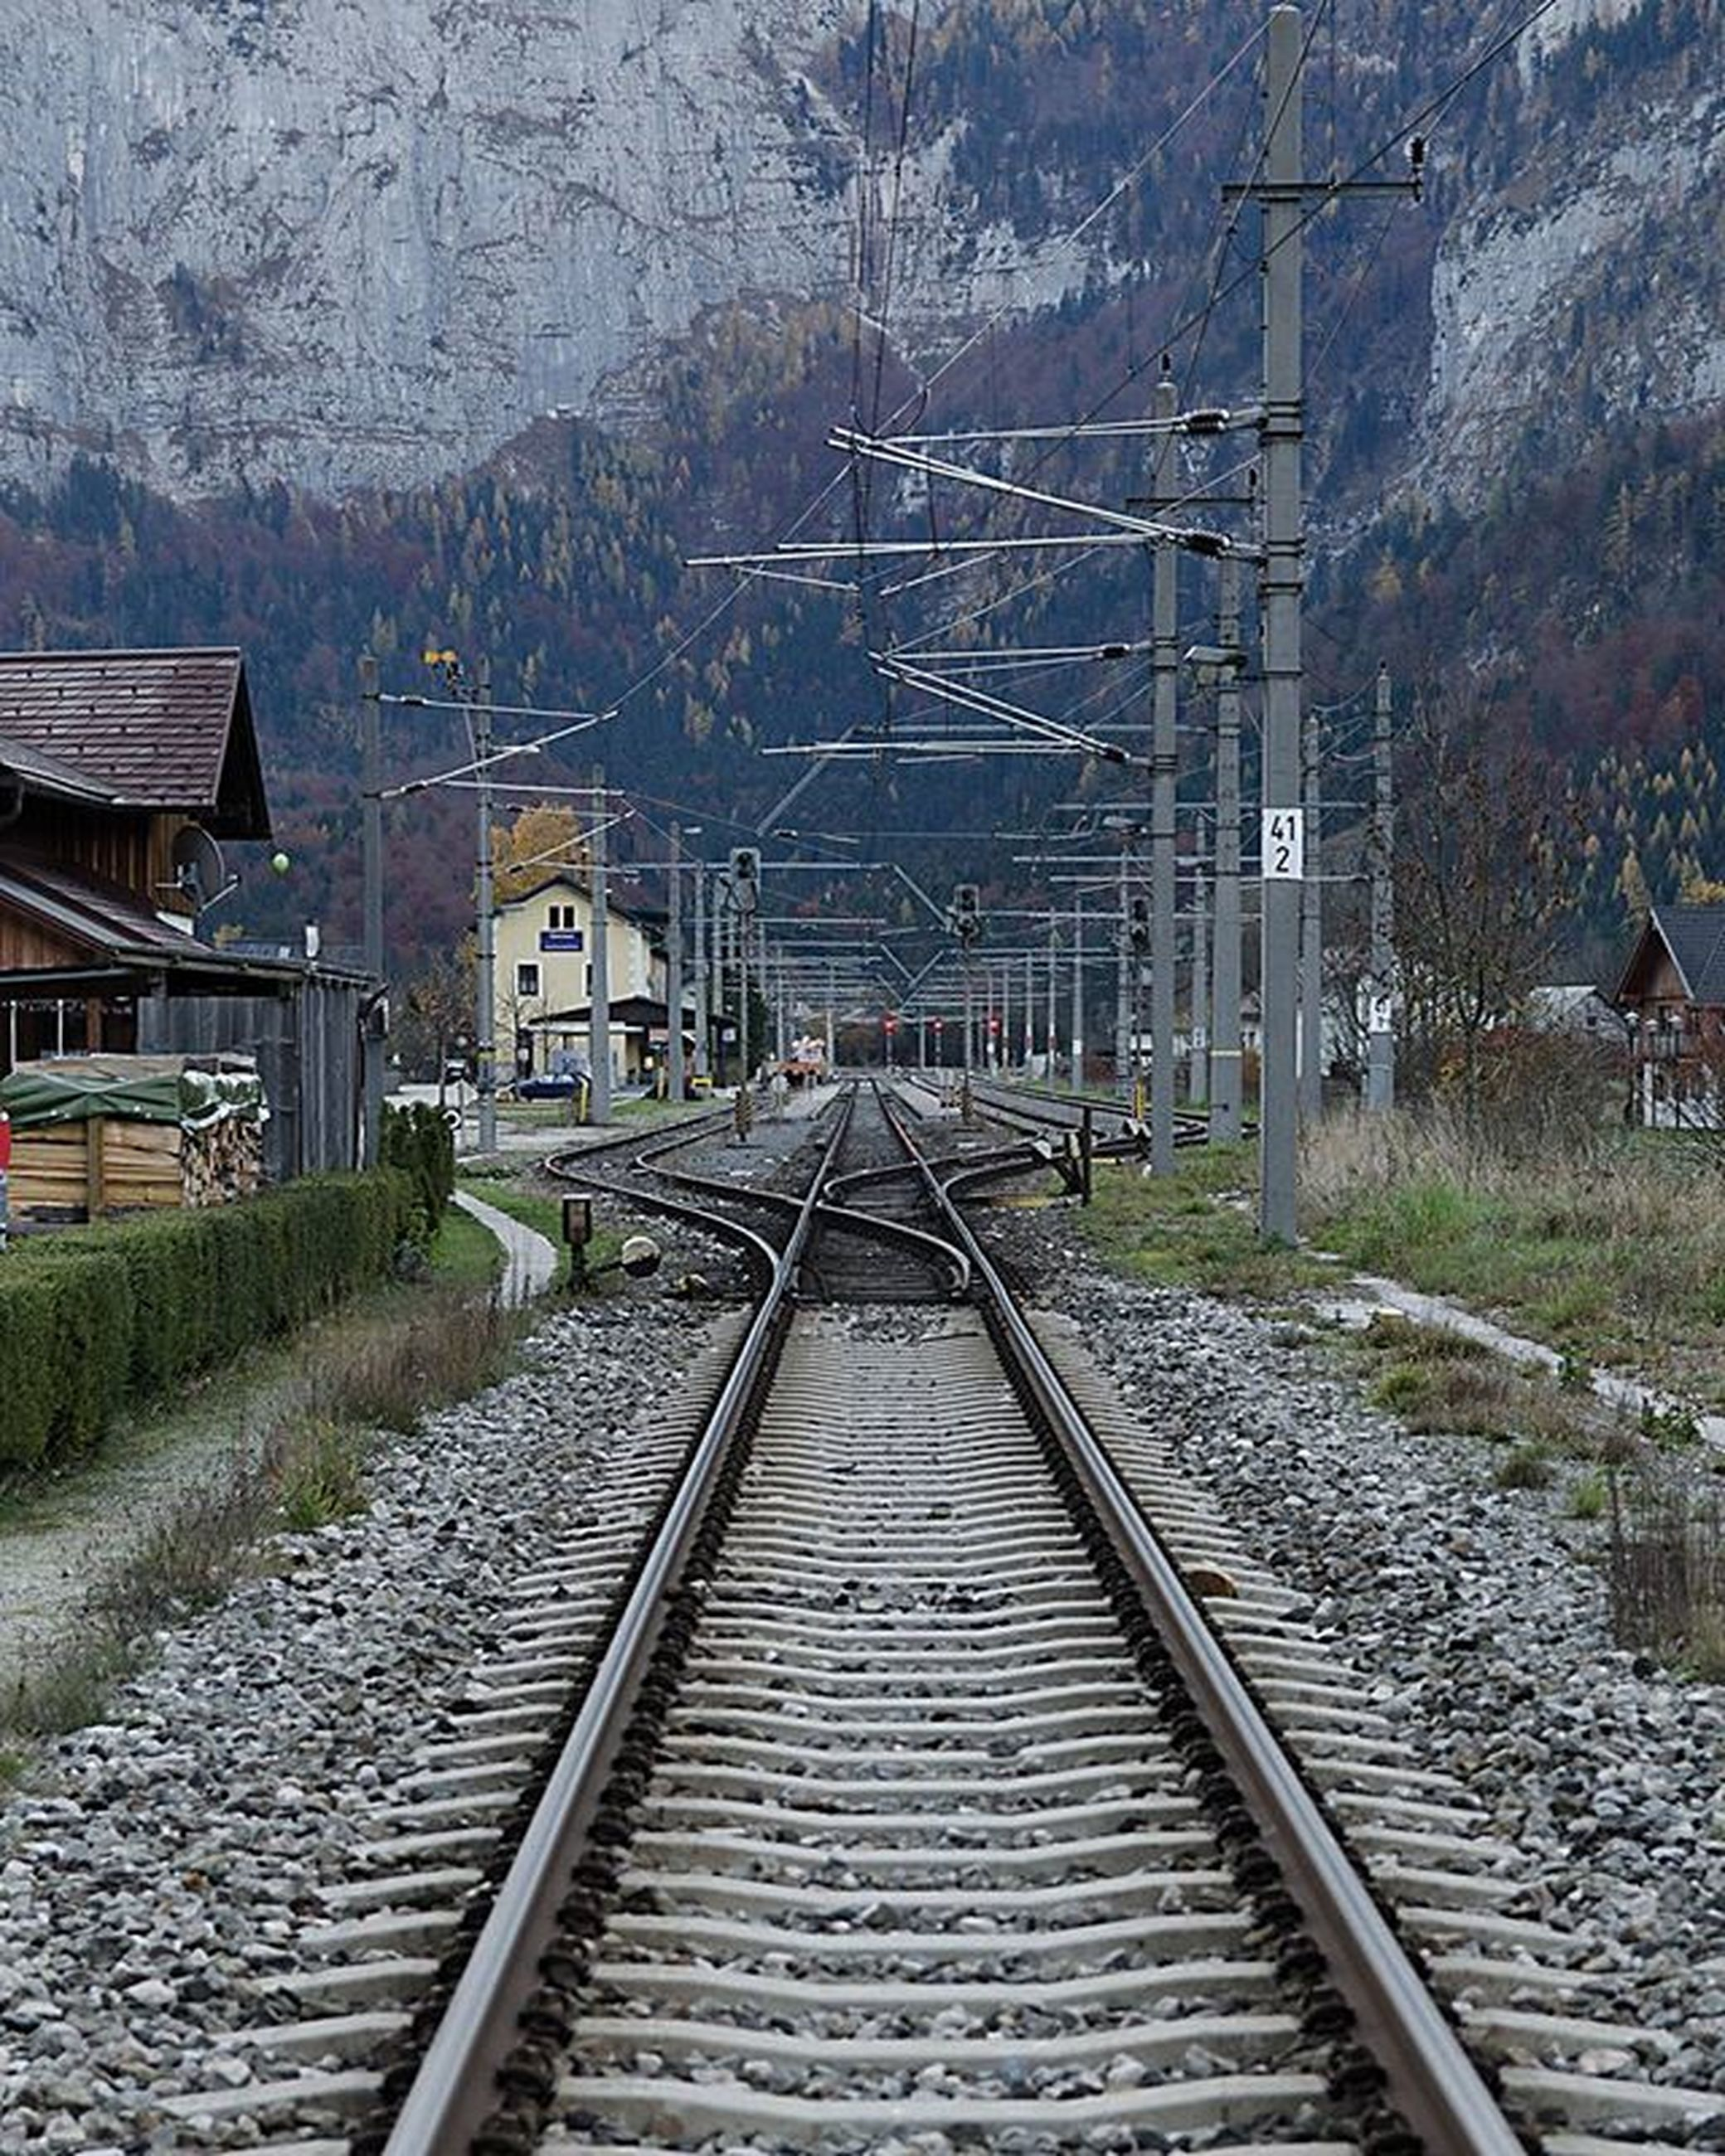 railroad track, rail transportation, building exterior, architecture, built structure, transportation, public transportation, the way forward, train - vehicle, railroad station, diminishing perspective, railway track, railroad station platform, high angle view, day, vanishing point, tree, sky, outdoors, no people